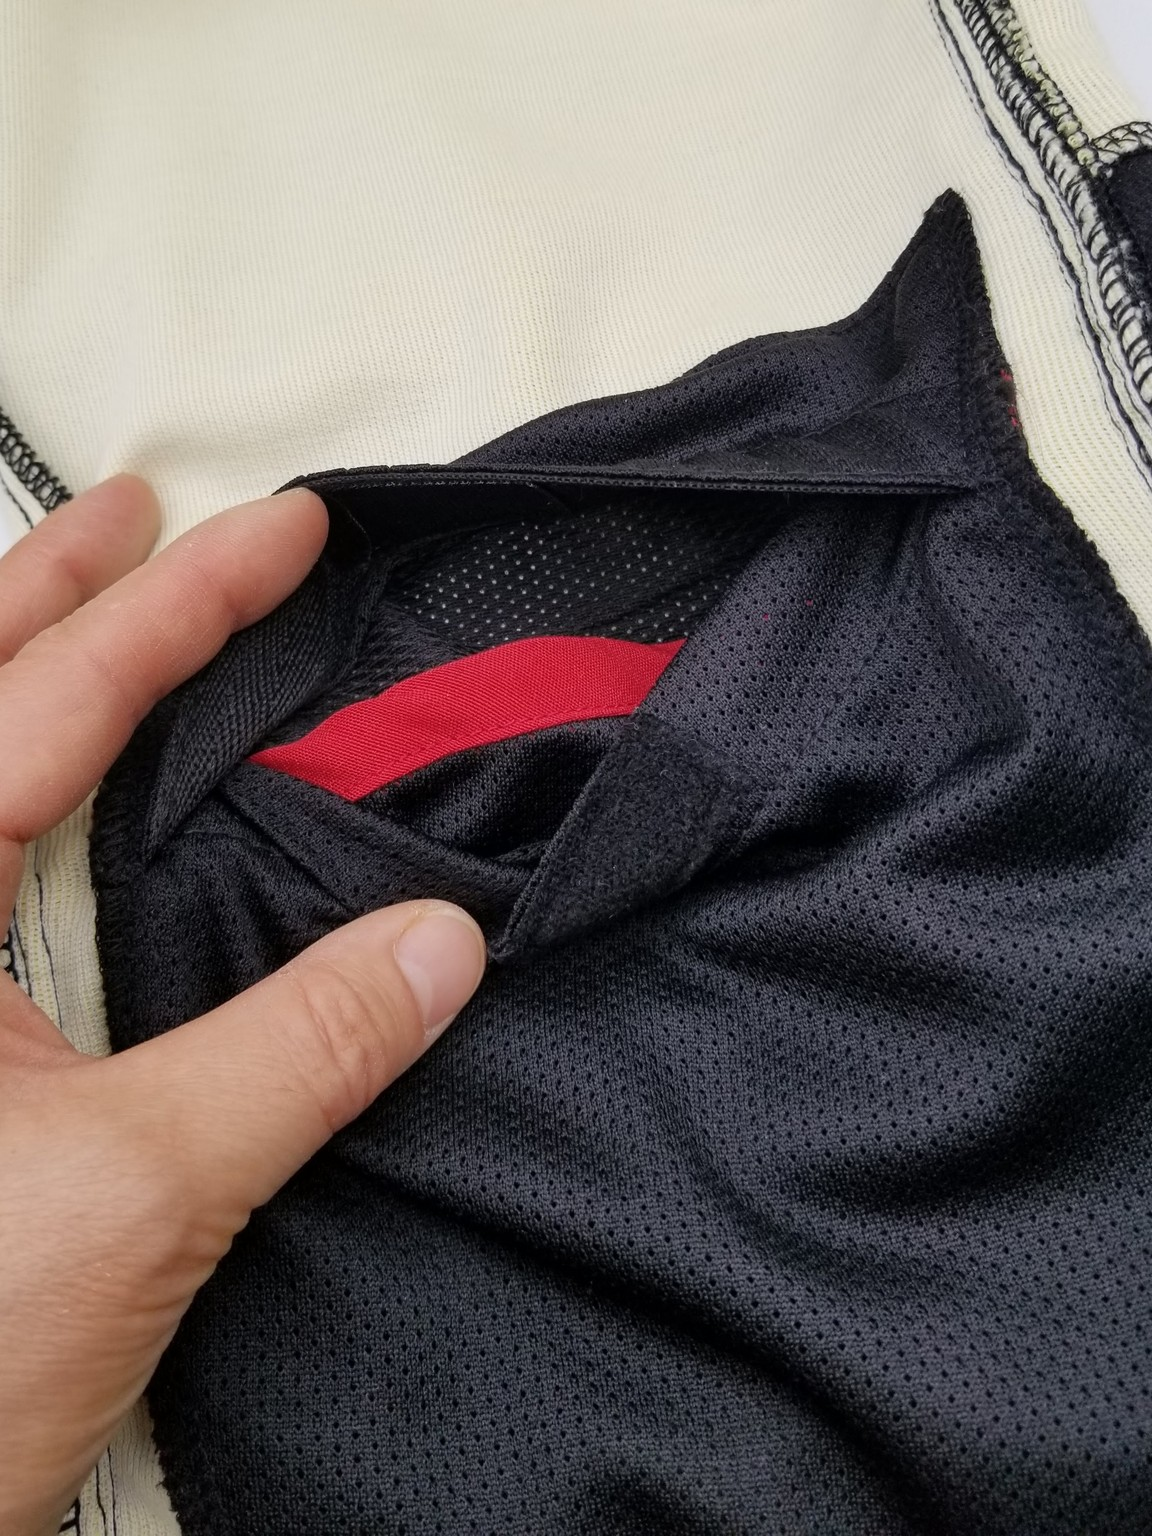 Closeup of where the protective pad is inserted